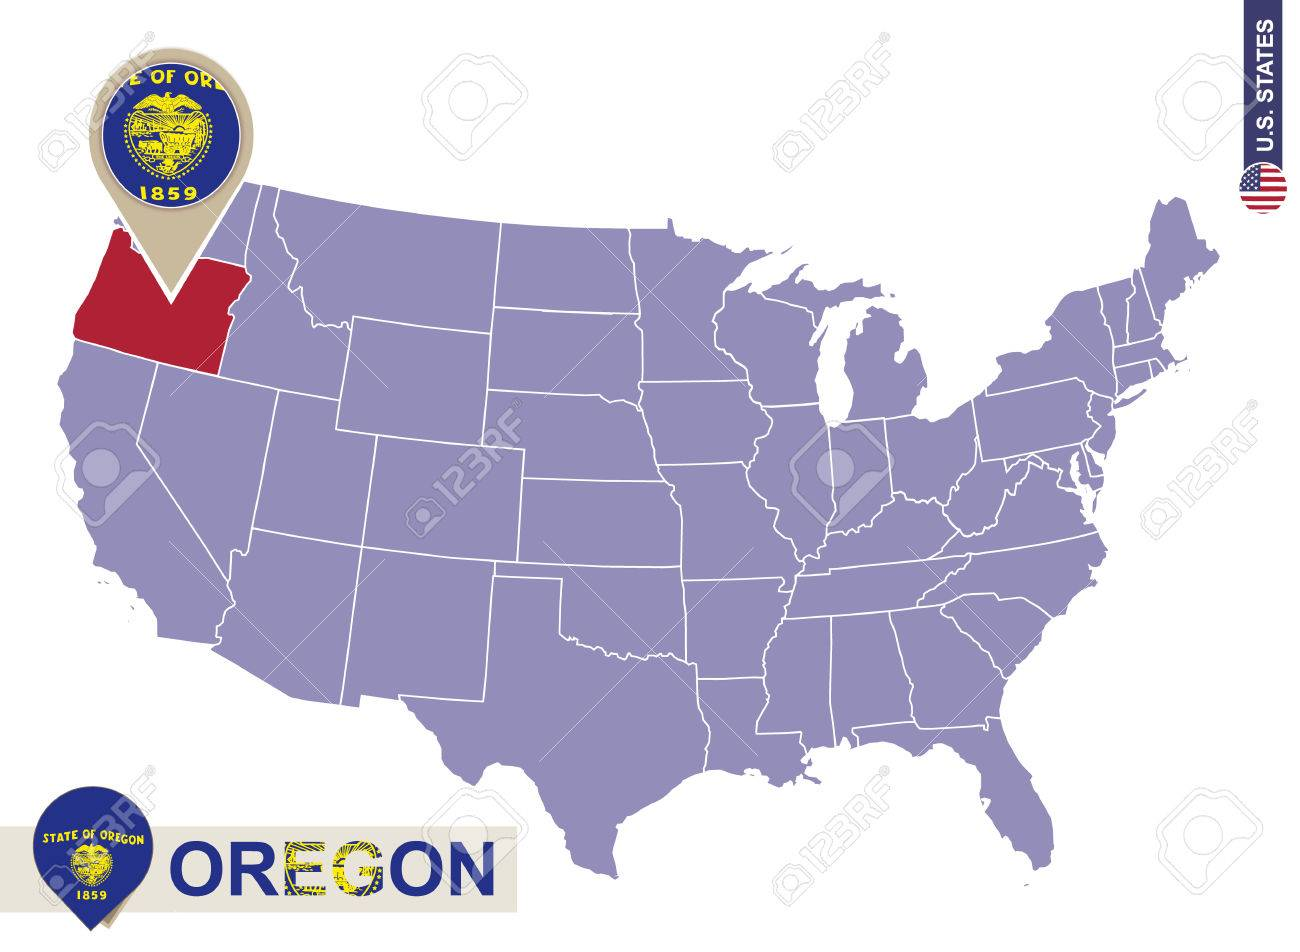 Oregon Maps And Data MyOnlineMapscom OR Maps Portland Oregon In - Us map apprenticeship program